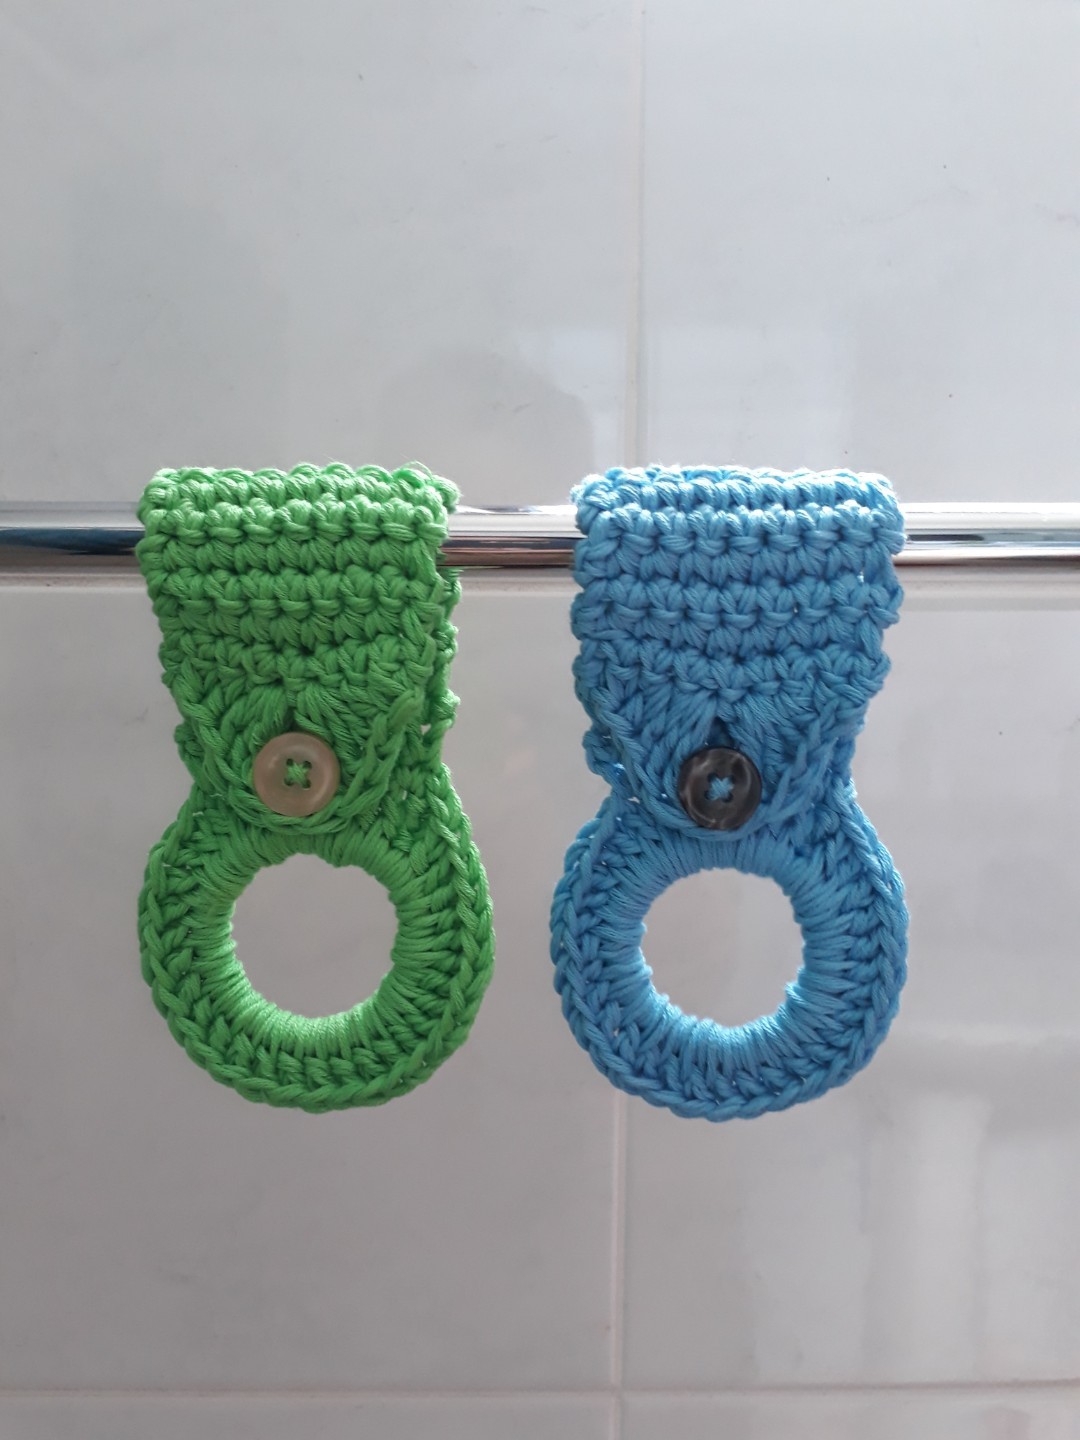 Crochet towel holder, Home Appliances, Kitchenware on Carousell